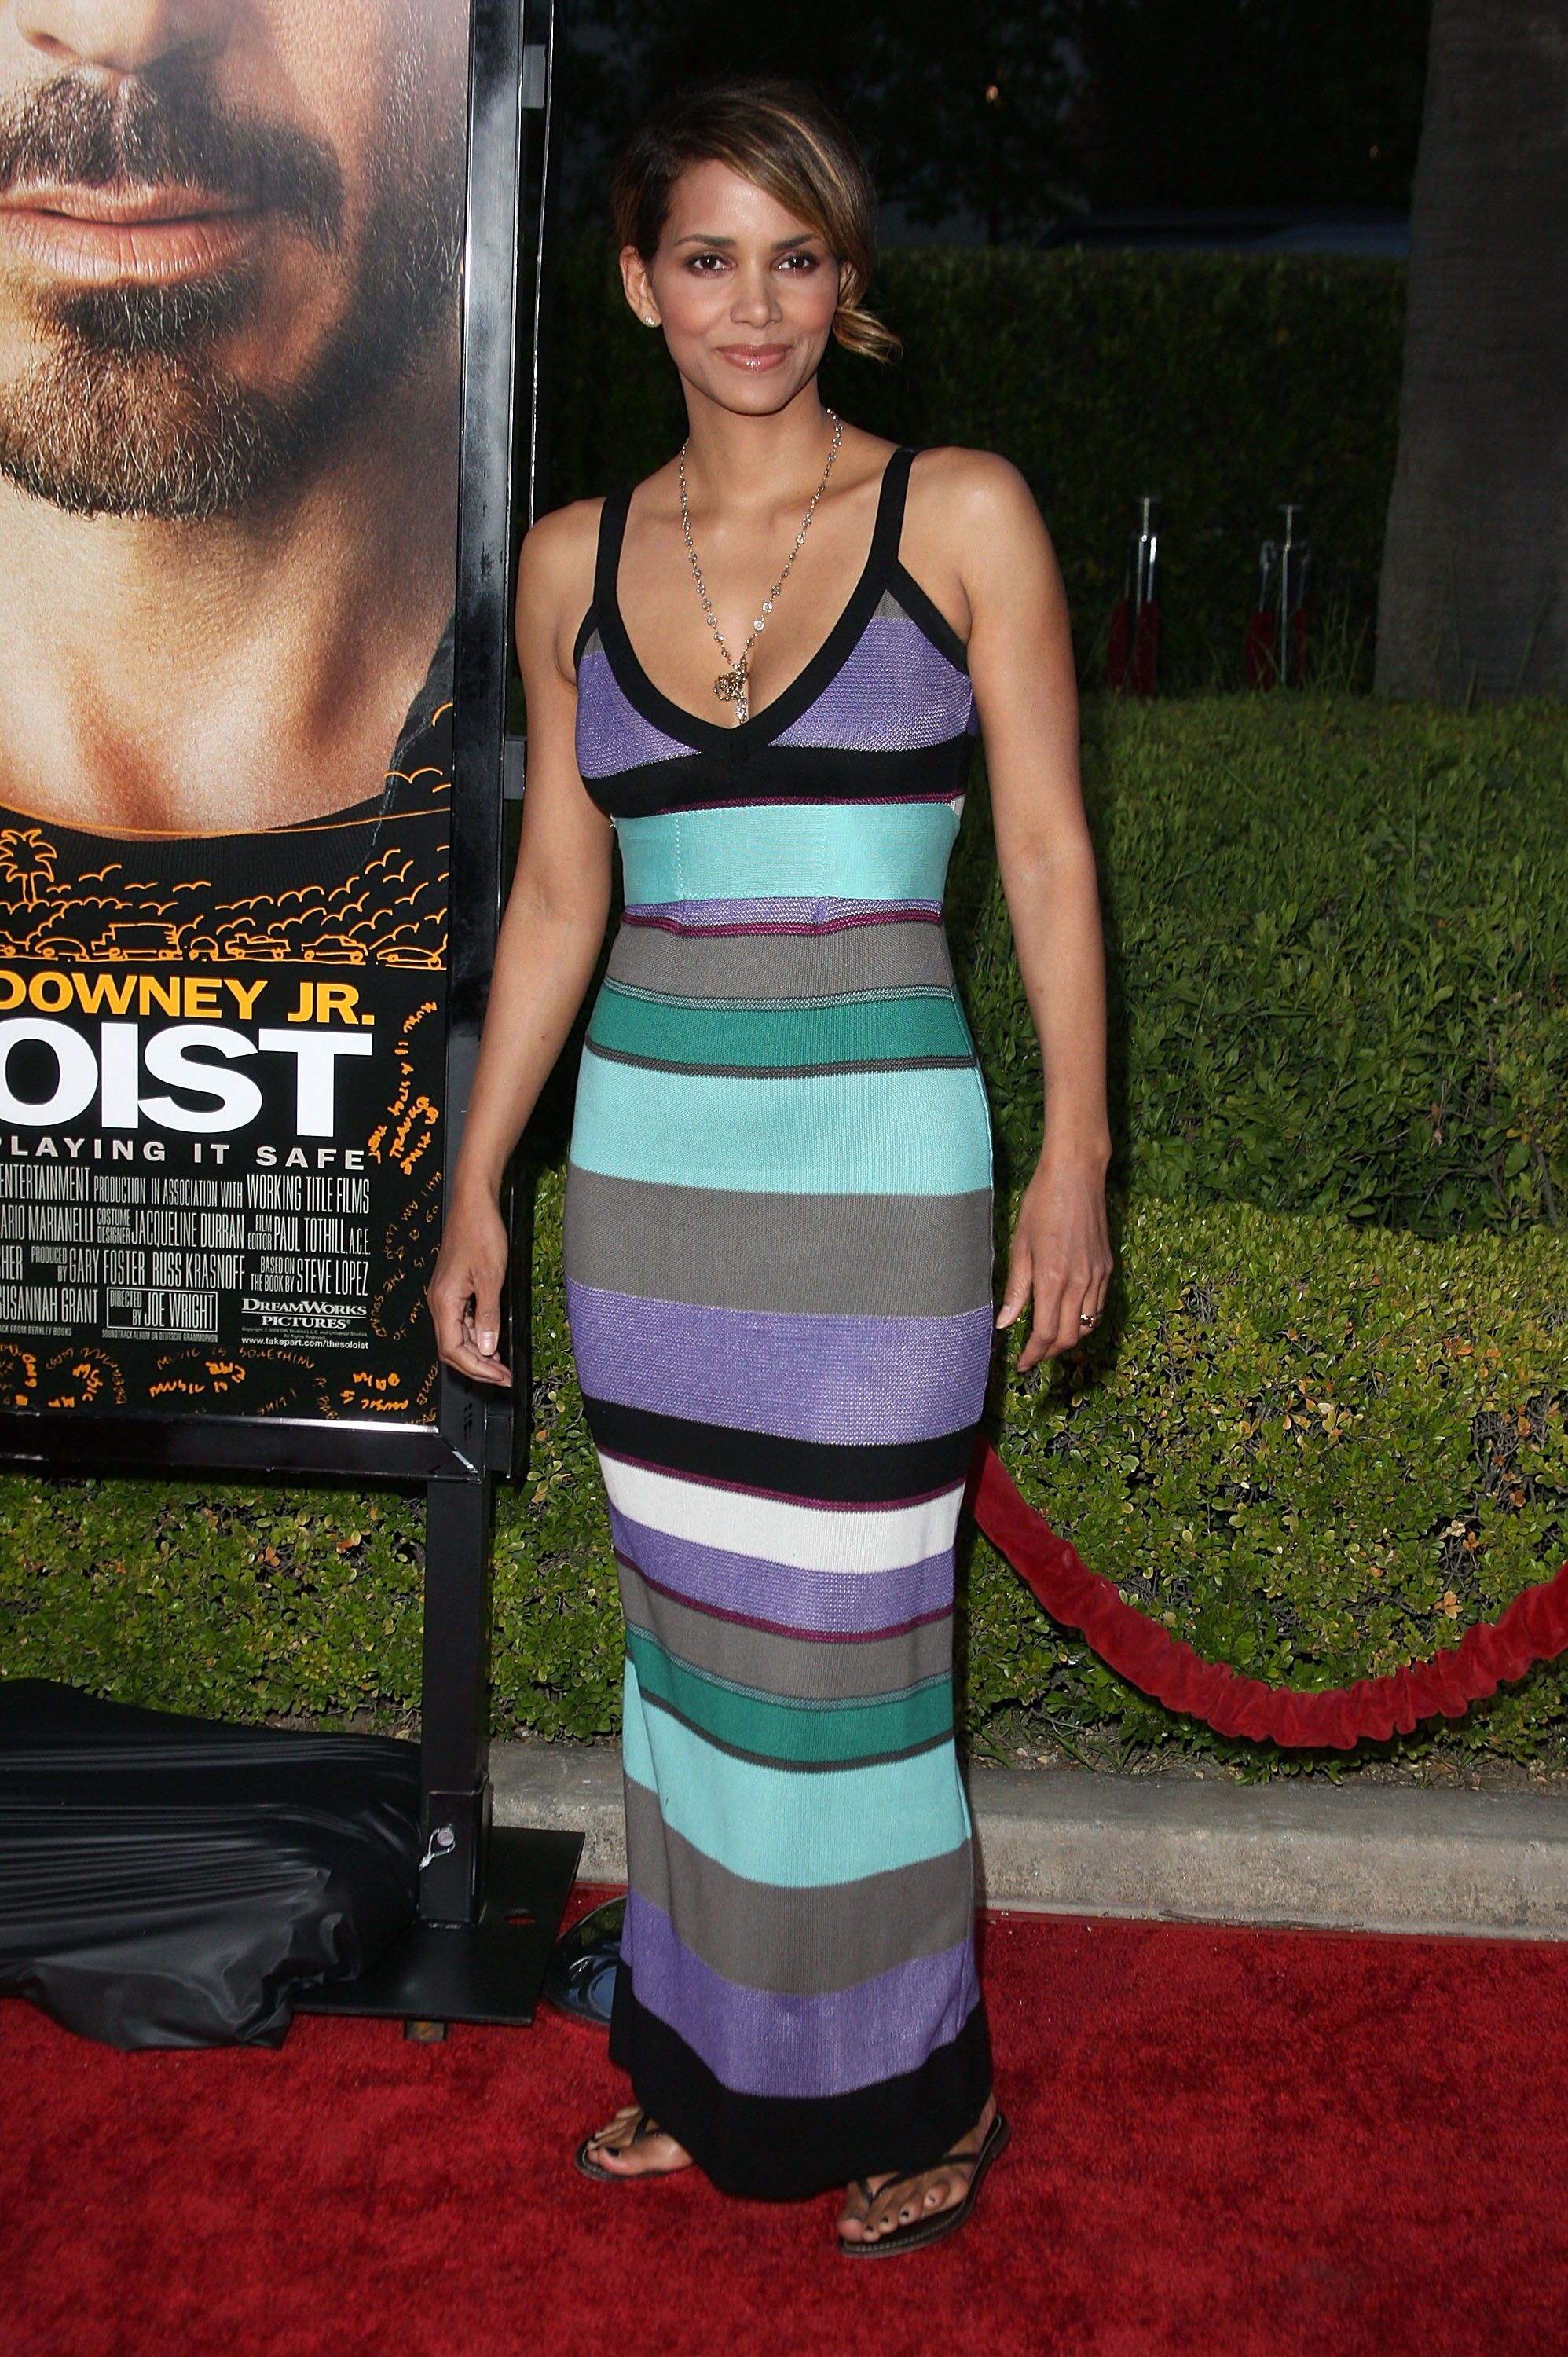 64667_Halle_Berry_The_Soloist_premiere_in_Los_Angeles_23_122_725lo.jpg